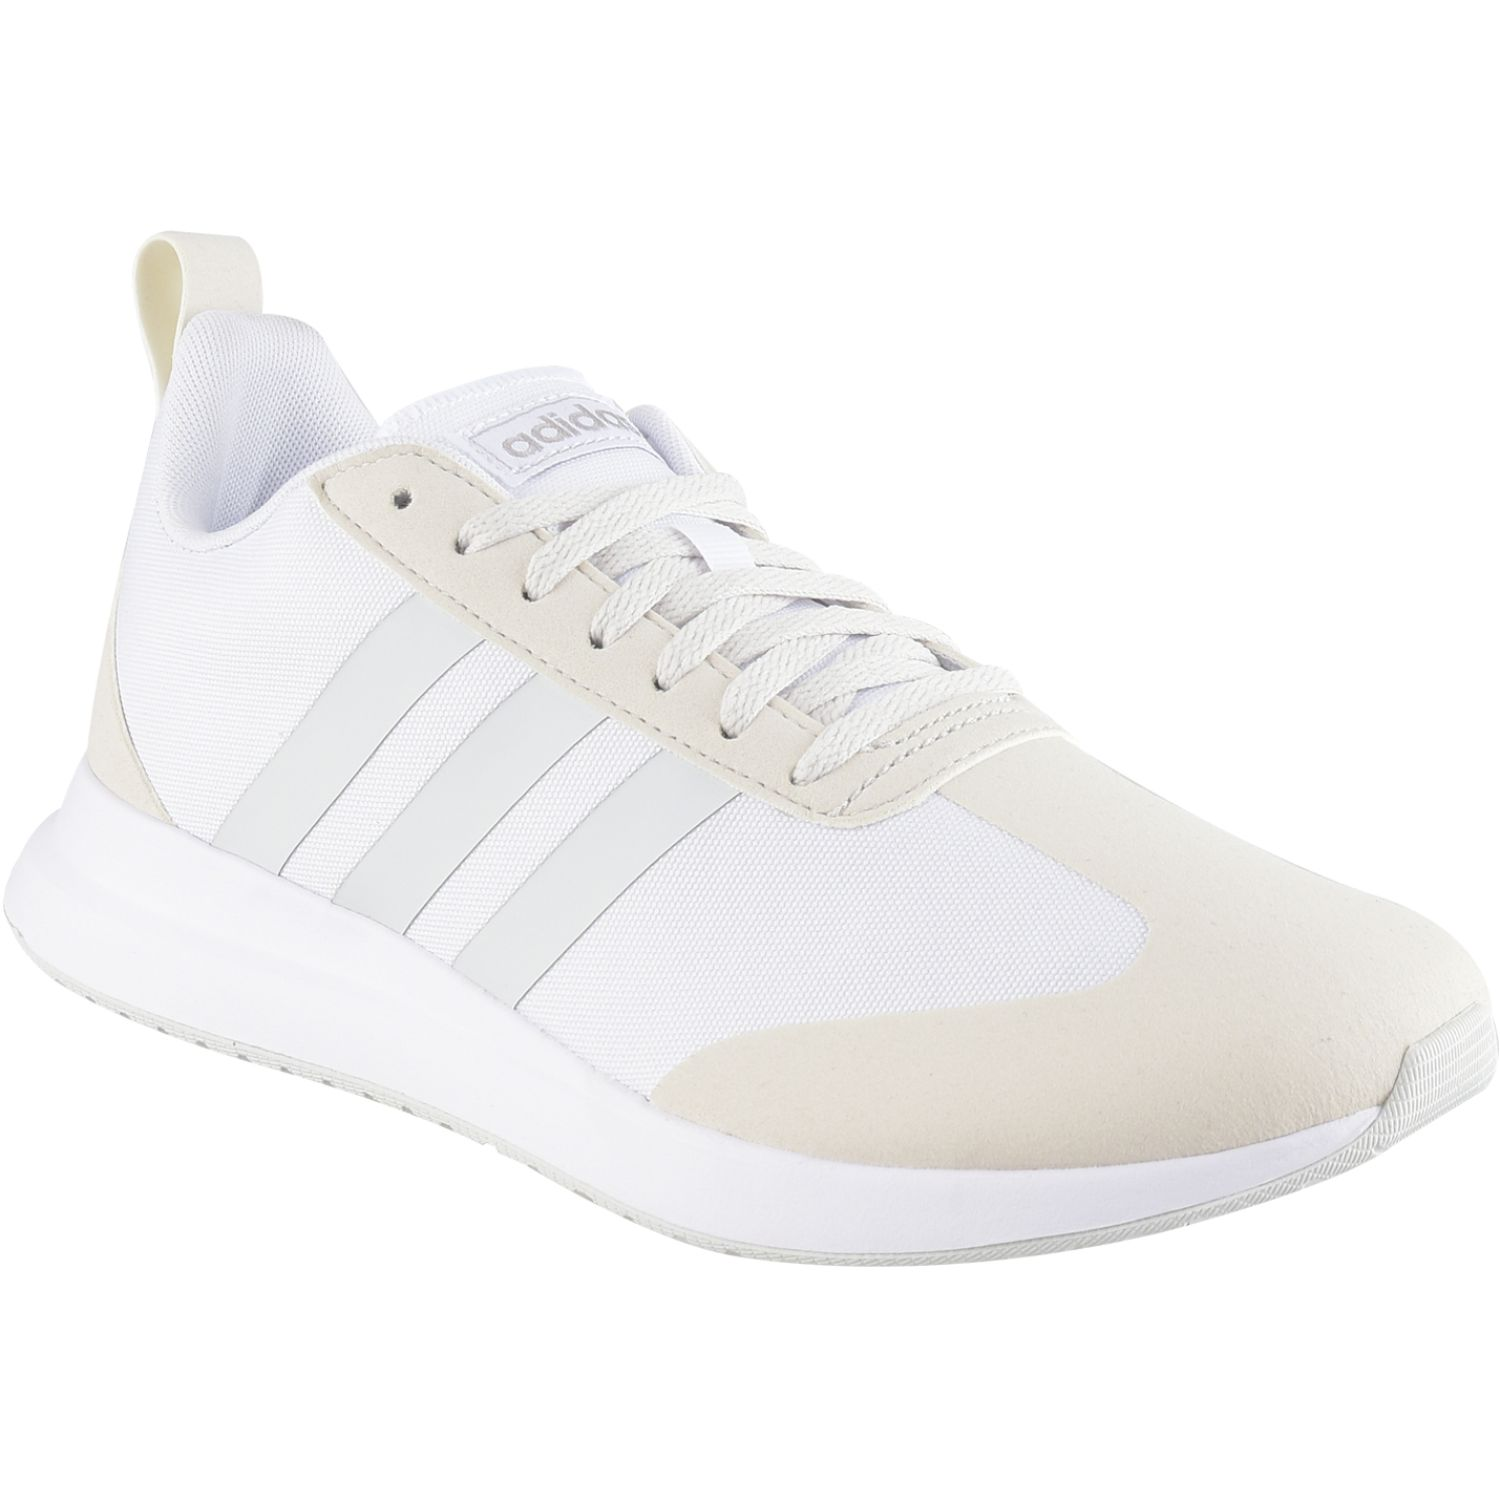 Adidas run60s Blanco Running en pista